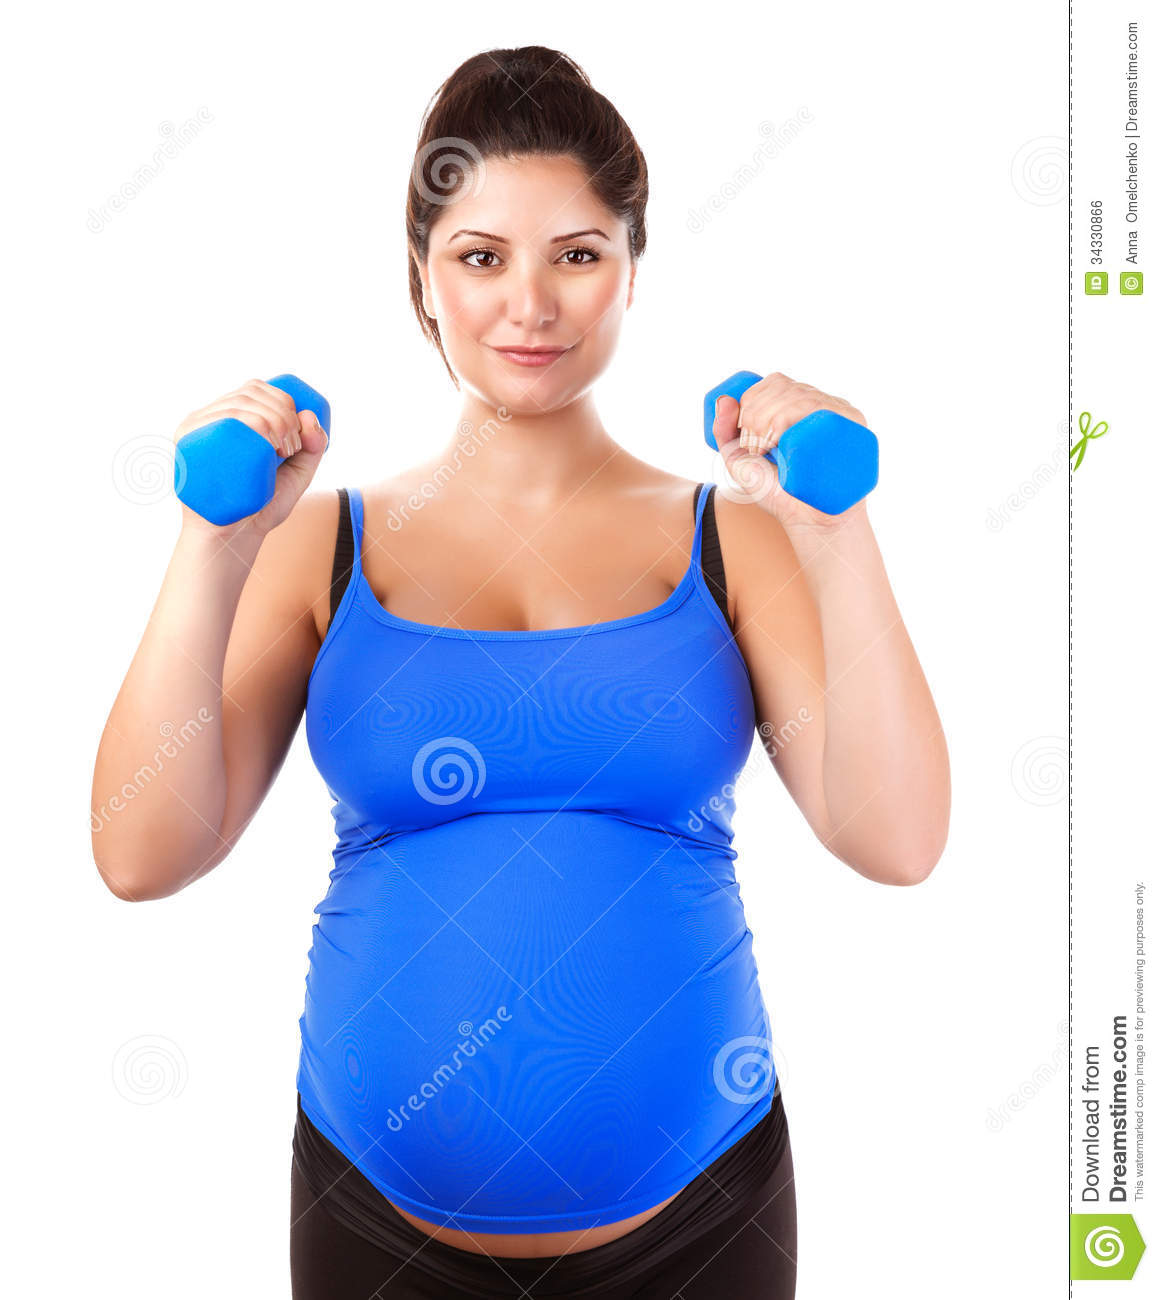 Sportive pregnant girl stock photo. Image of beauty, baby ...